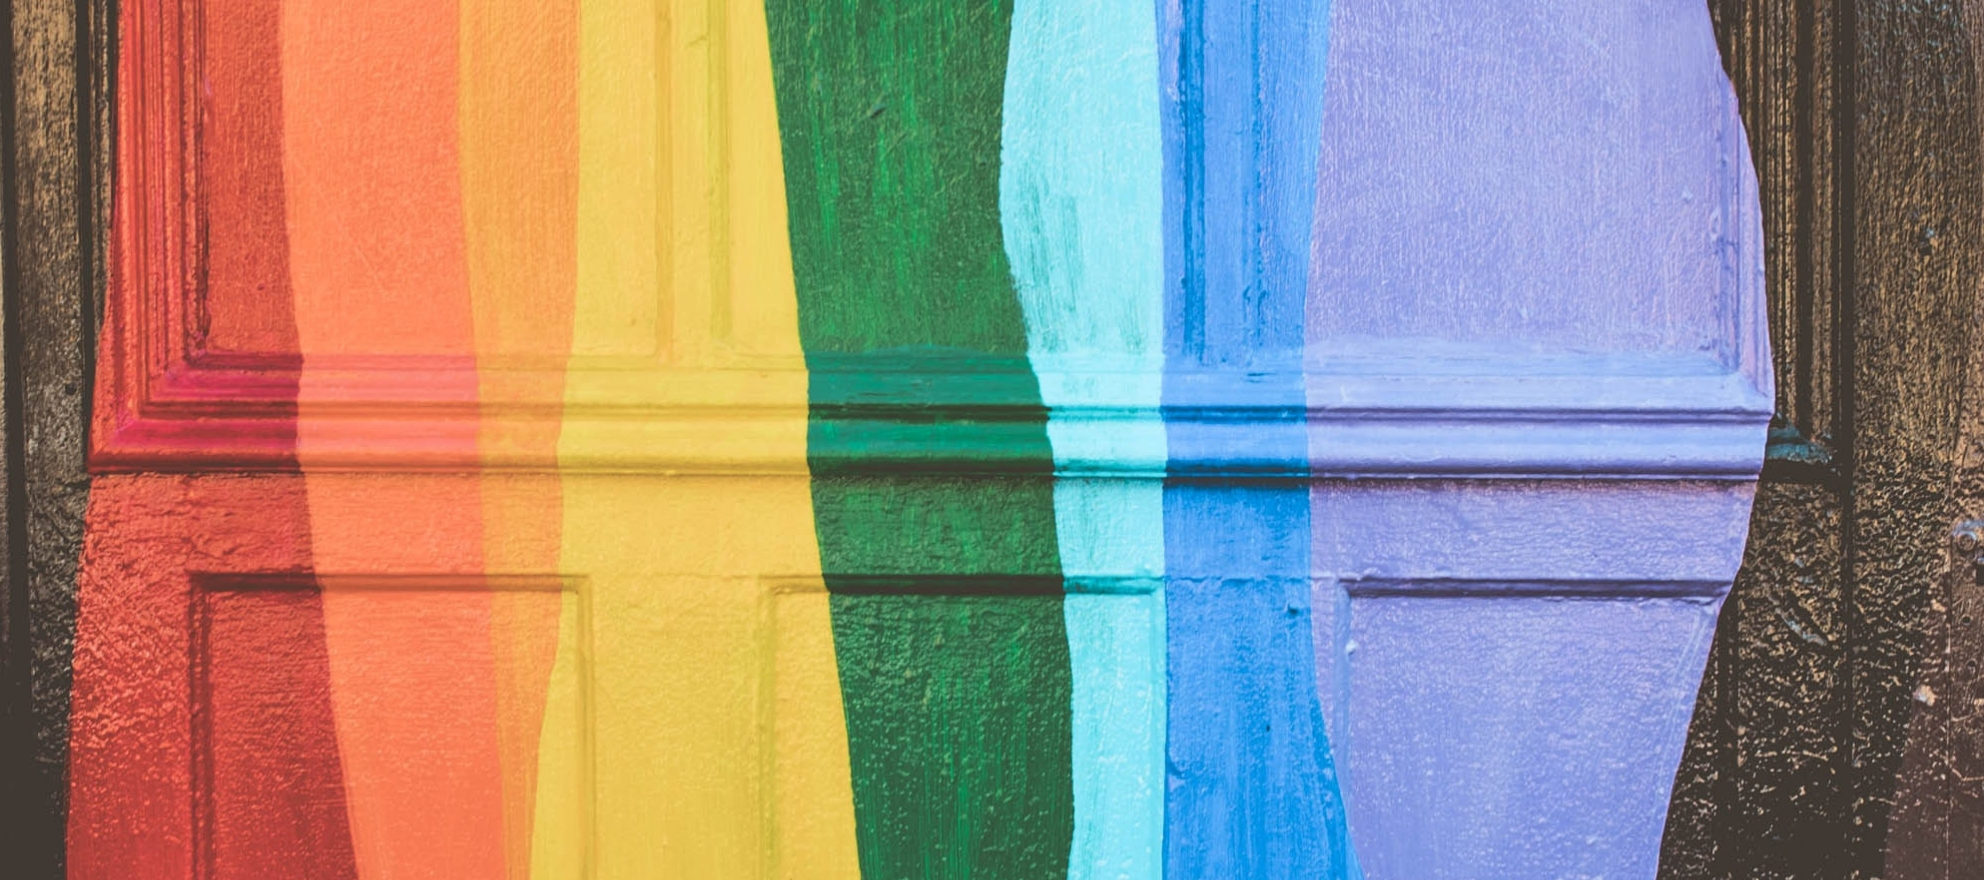 5 things to remember when working with LGBT clients